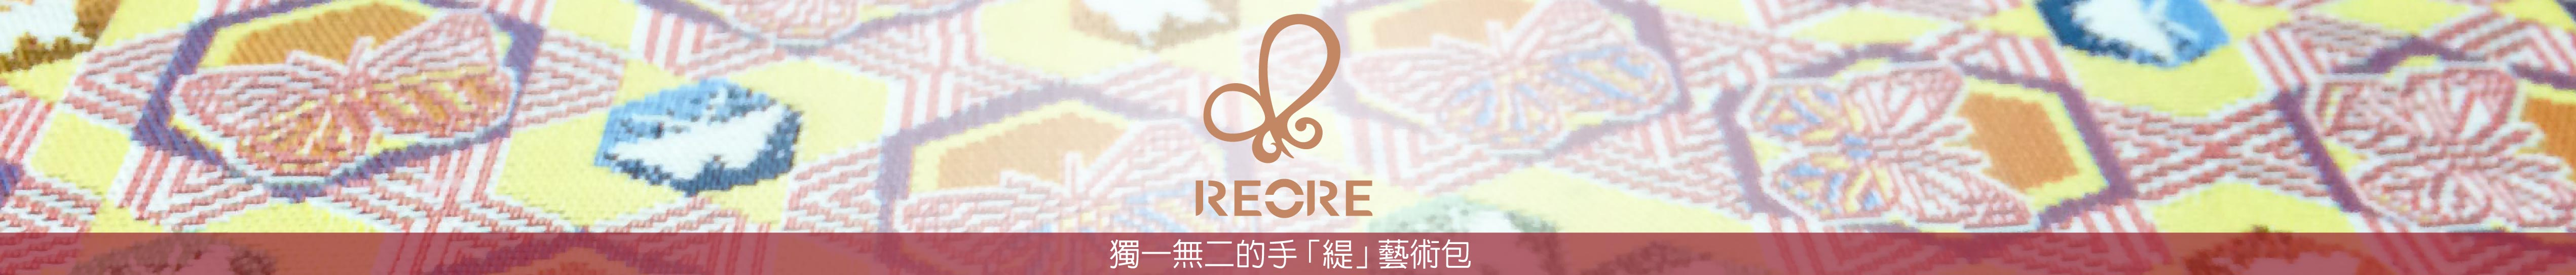 REORE